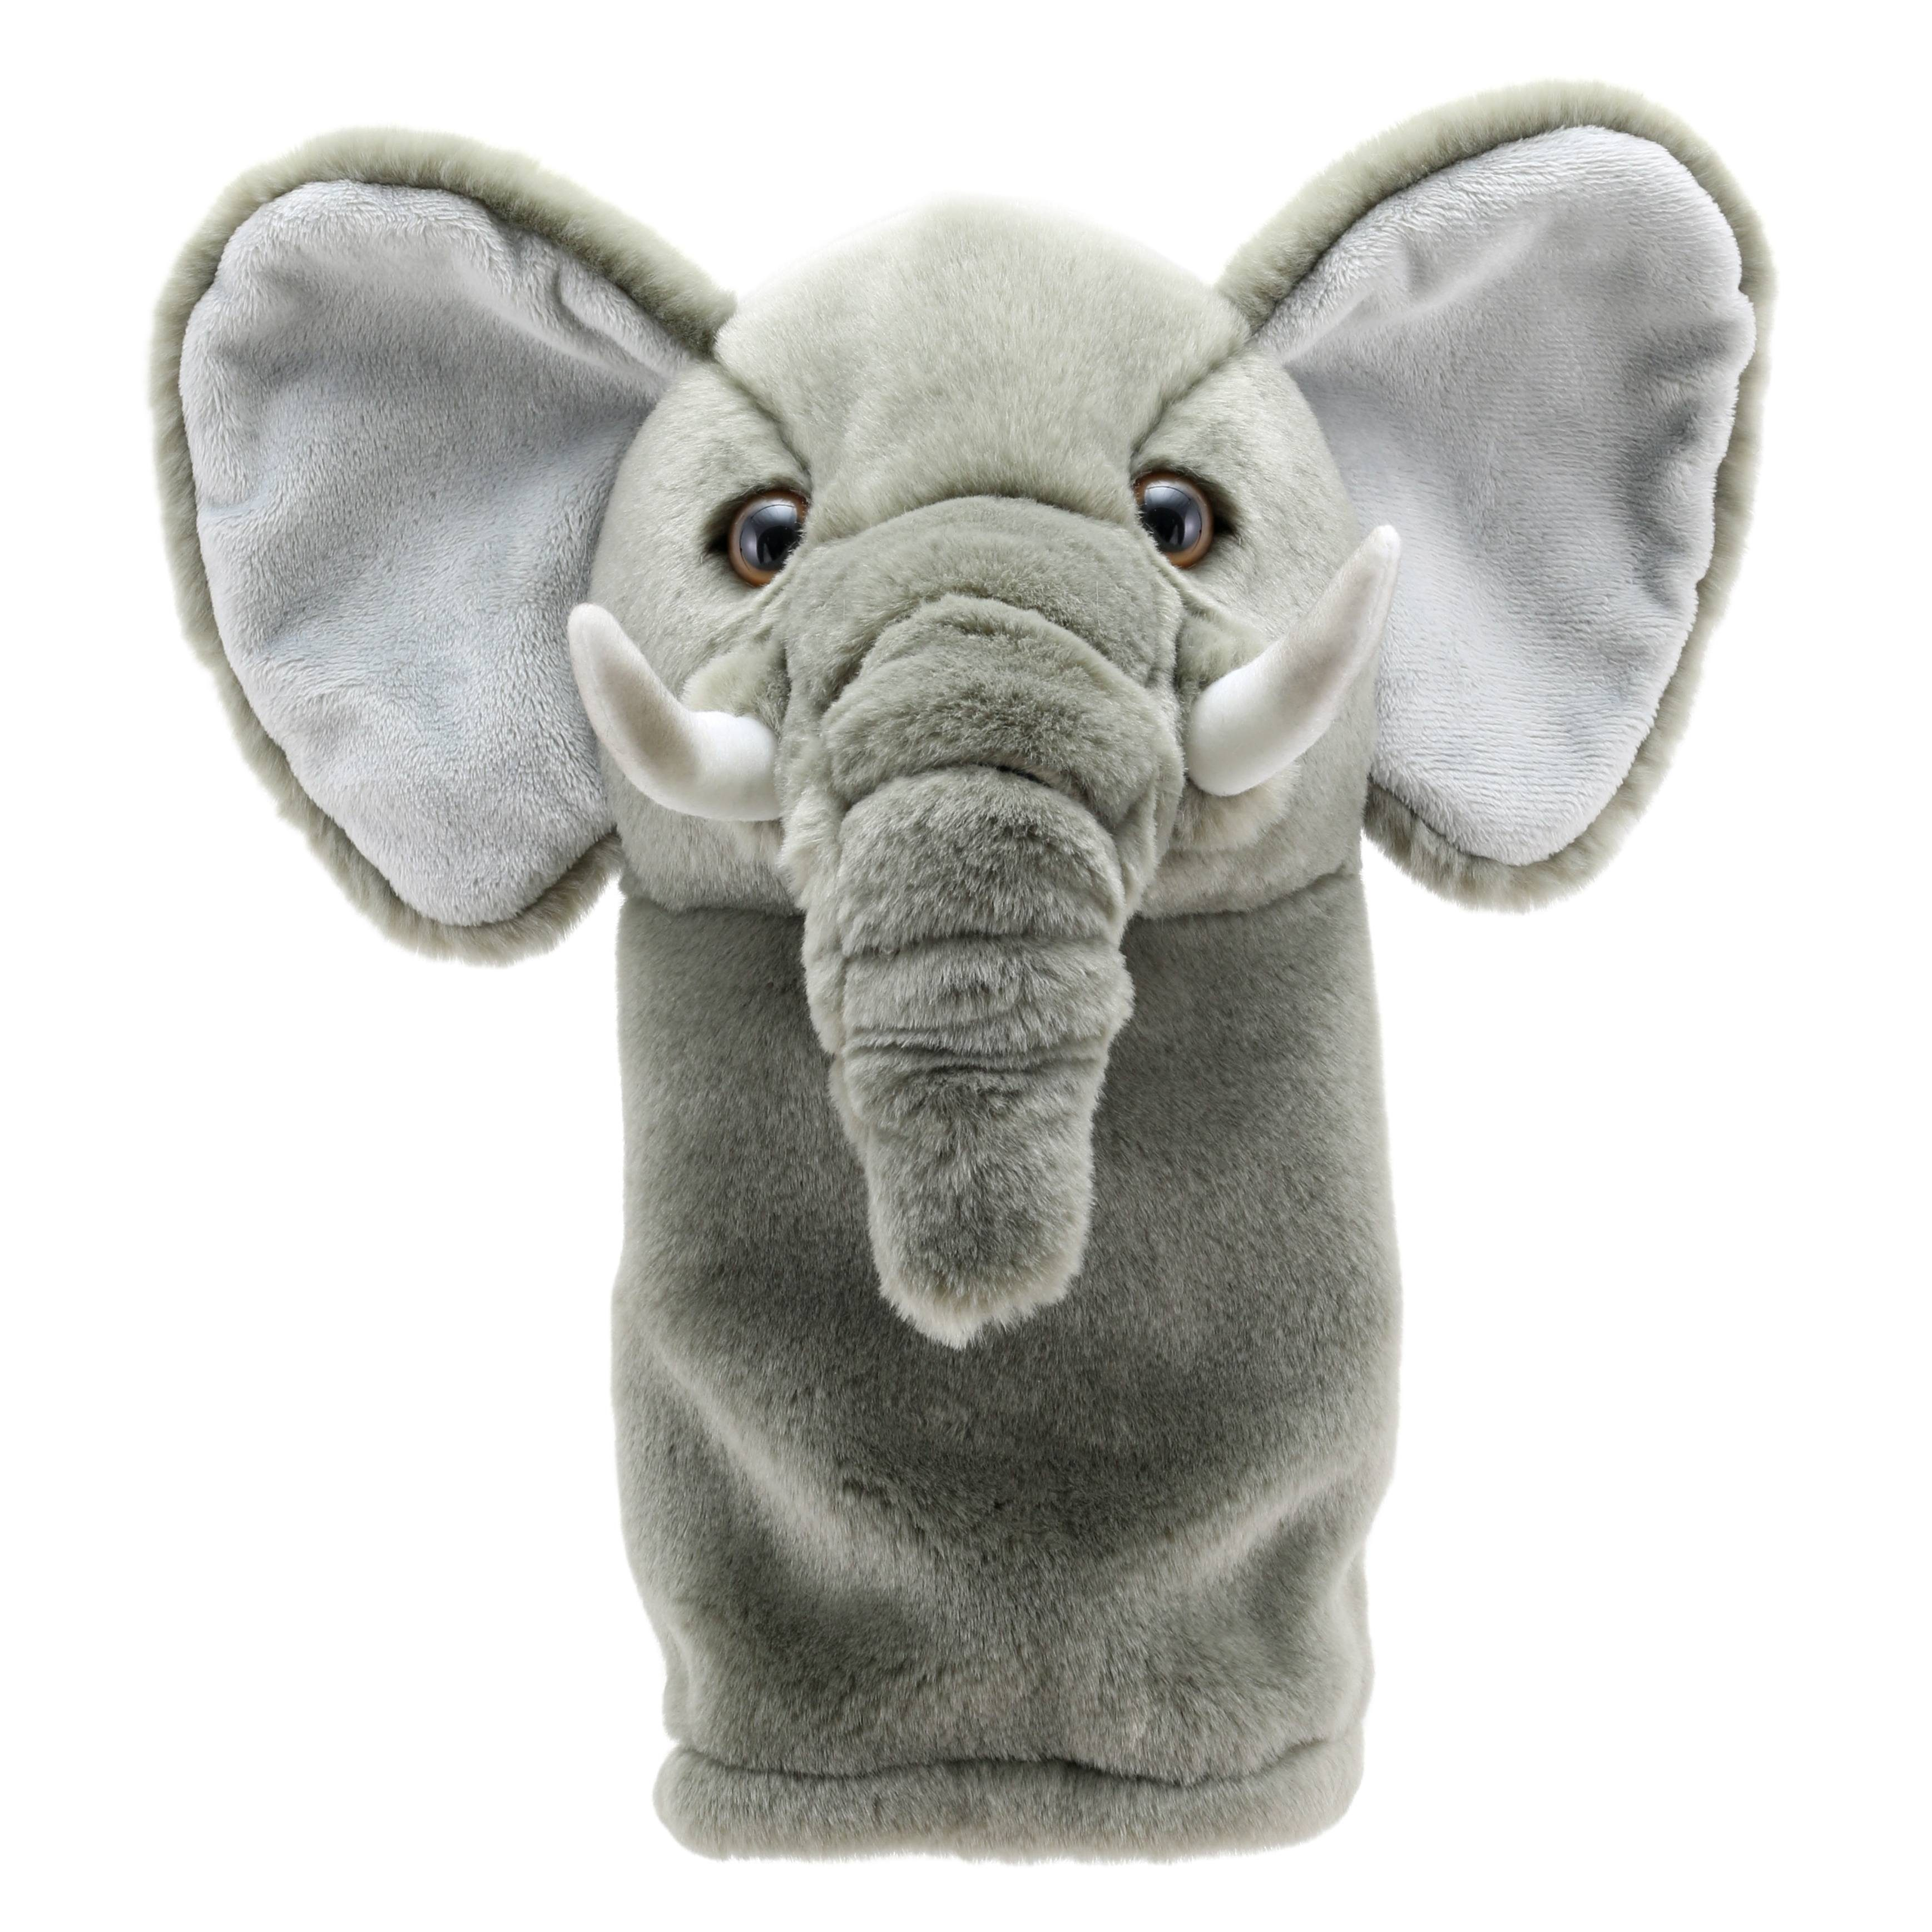 Elephant - Golf Head Cover